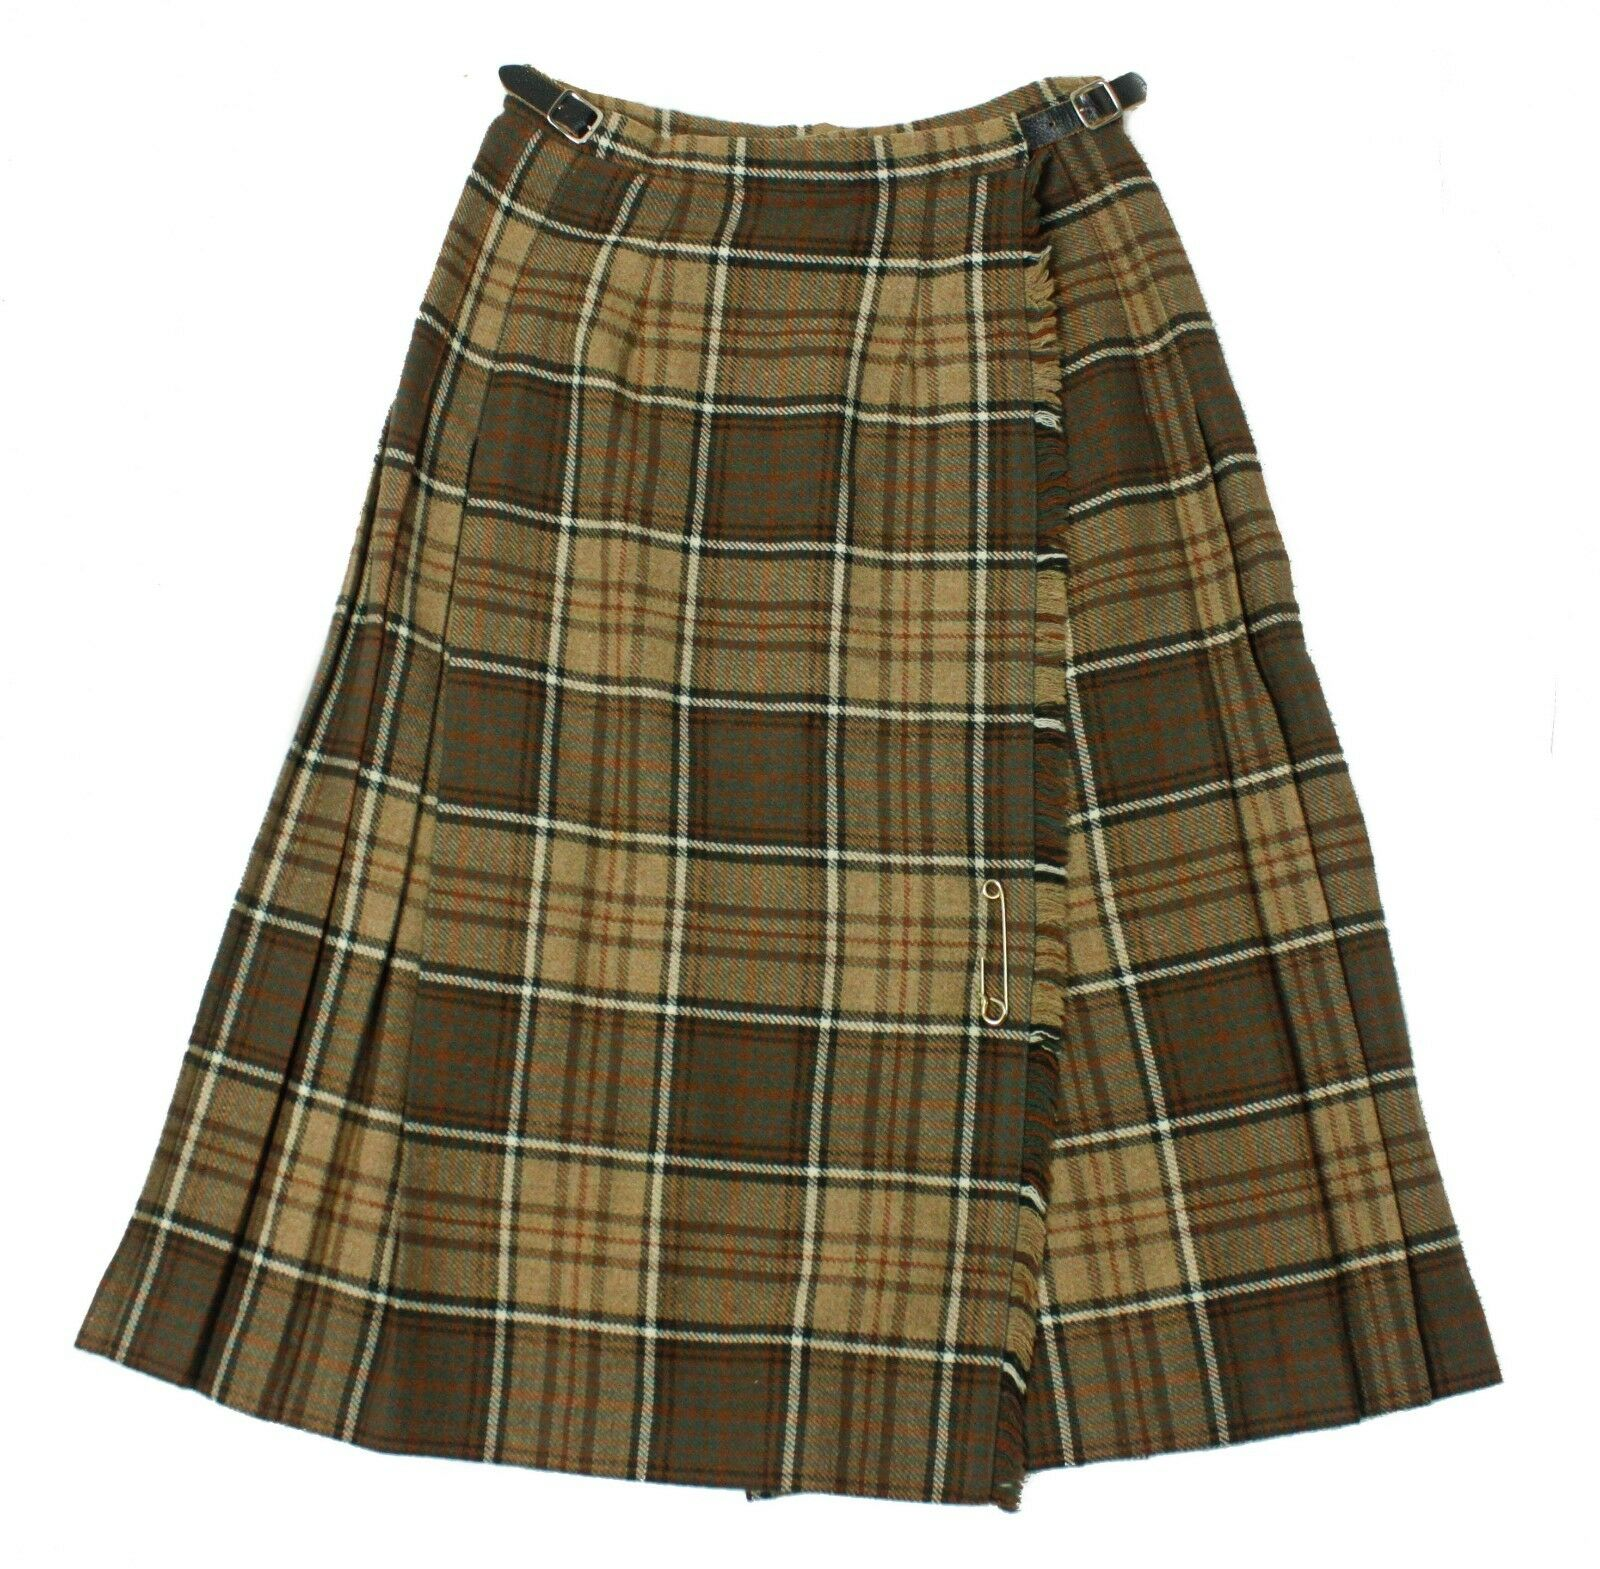 Laird-Portch Brown Plaid Wool Made Scotland Womens Wrap Kilt Style Skirt